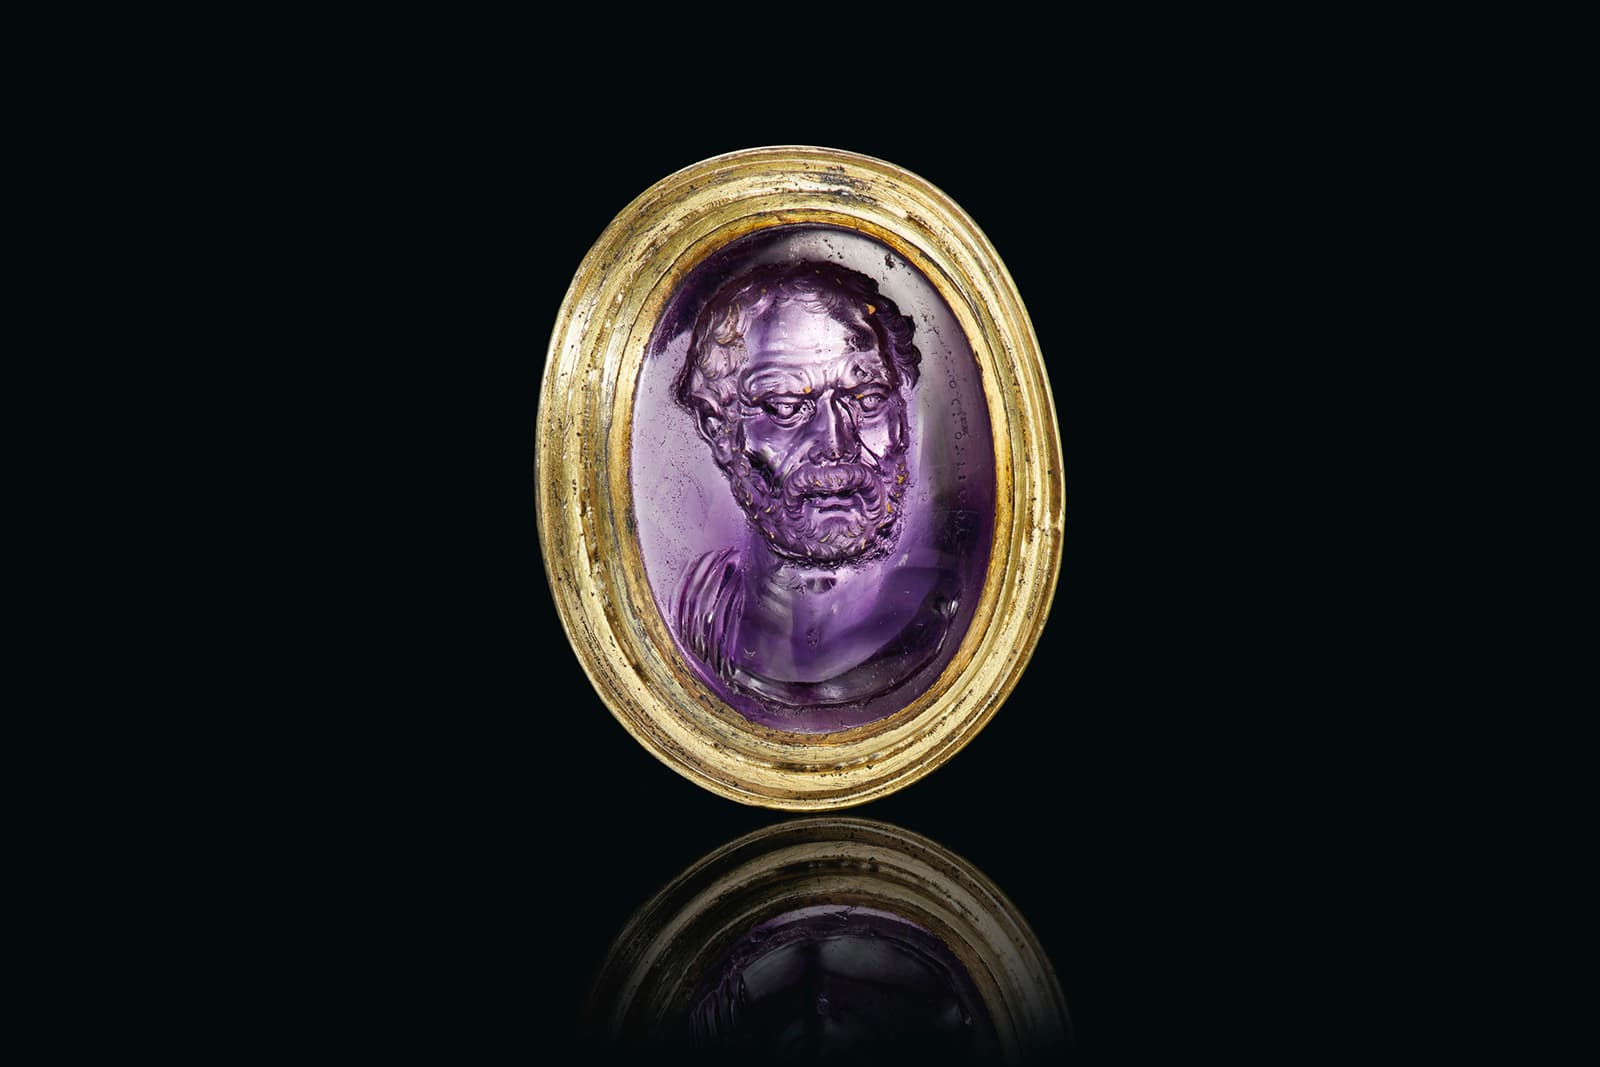 A Roman amethyst ring with a portrait of Dioskourdies, circa late 1st century BC, sold in 2019 by Christies's New York for $1.6 million